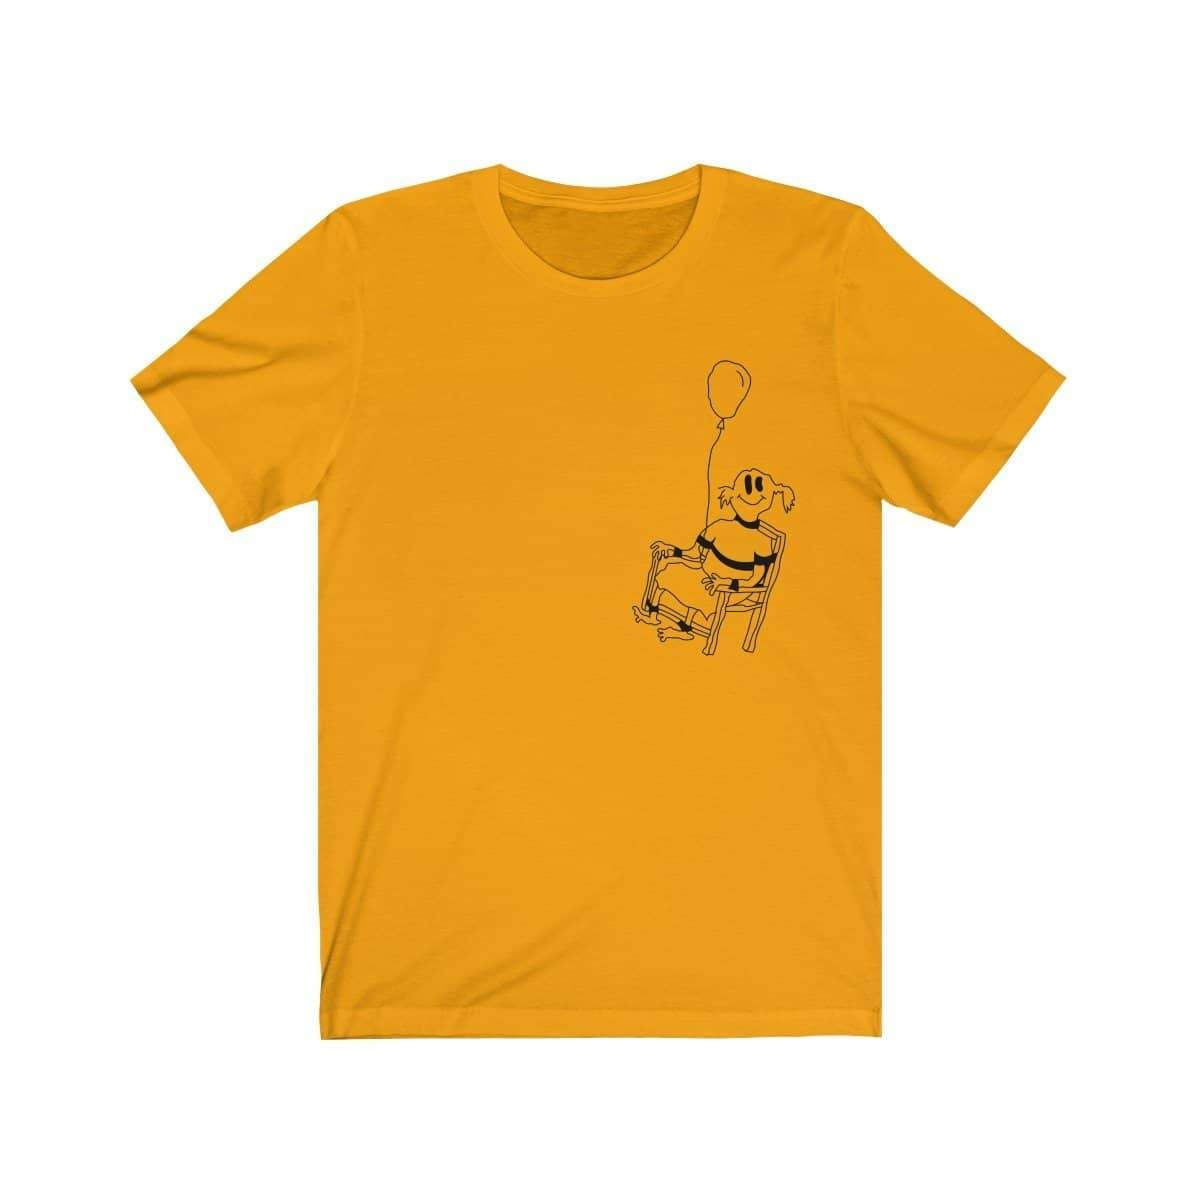 Limited Edition 100% cottonunisex t shirtby Tattoo artistAutoChrist !  Free Shipping Topqualityprint - Made in USA  This updated unisex essential fits like a well-loved favorite. Super soft cotton and excellent quality print .  .: Retail fit .: 100% Soft cotton .: Light fabric (4.2 oz/yd² (142 g/m²)) .: Tear away label .: Runs true to size       XS S M L XL 2XL 3XL     Width, in 17 18 20 23 25 26 28   Length, in 28 28 30 30 32 33 33   Sleeve length